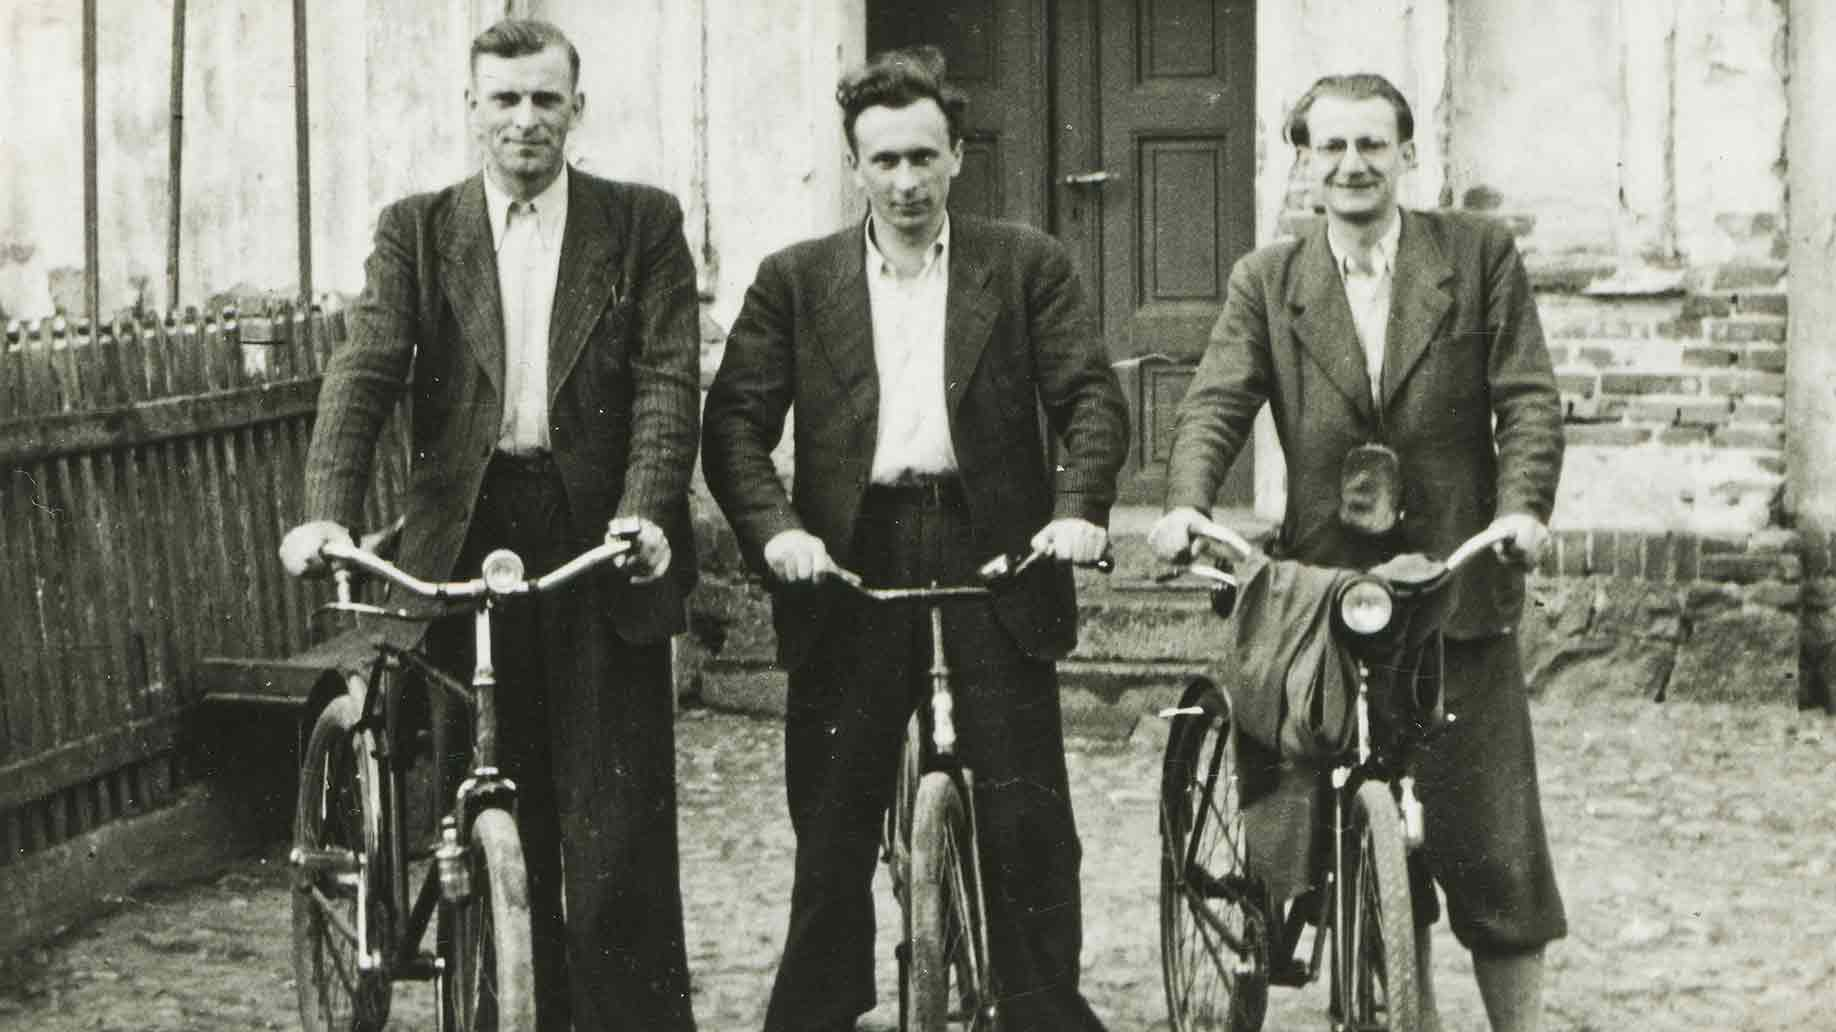 vintage photo of three men bicycles forties